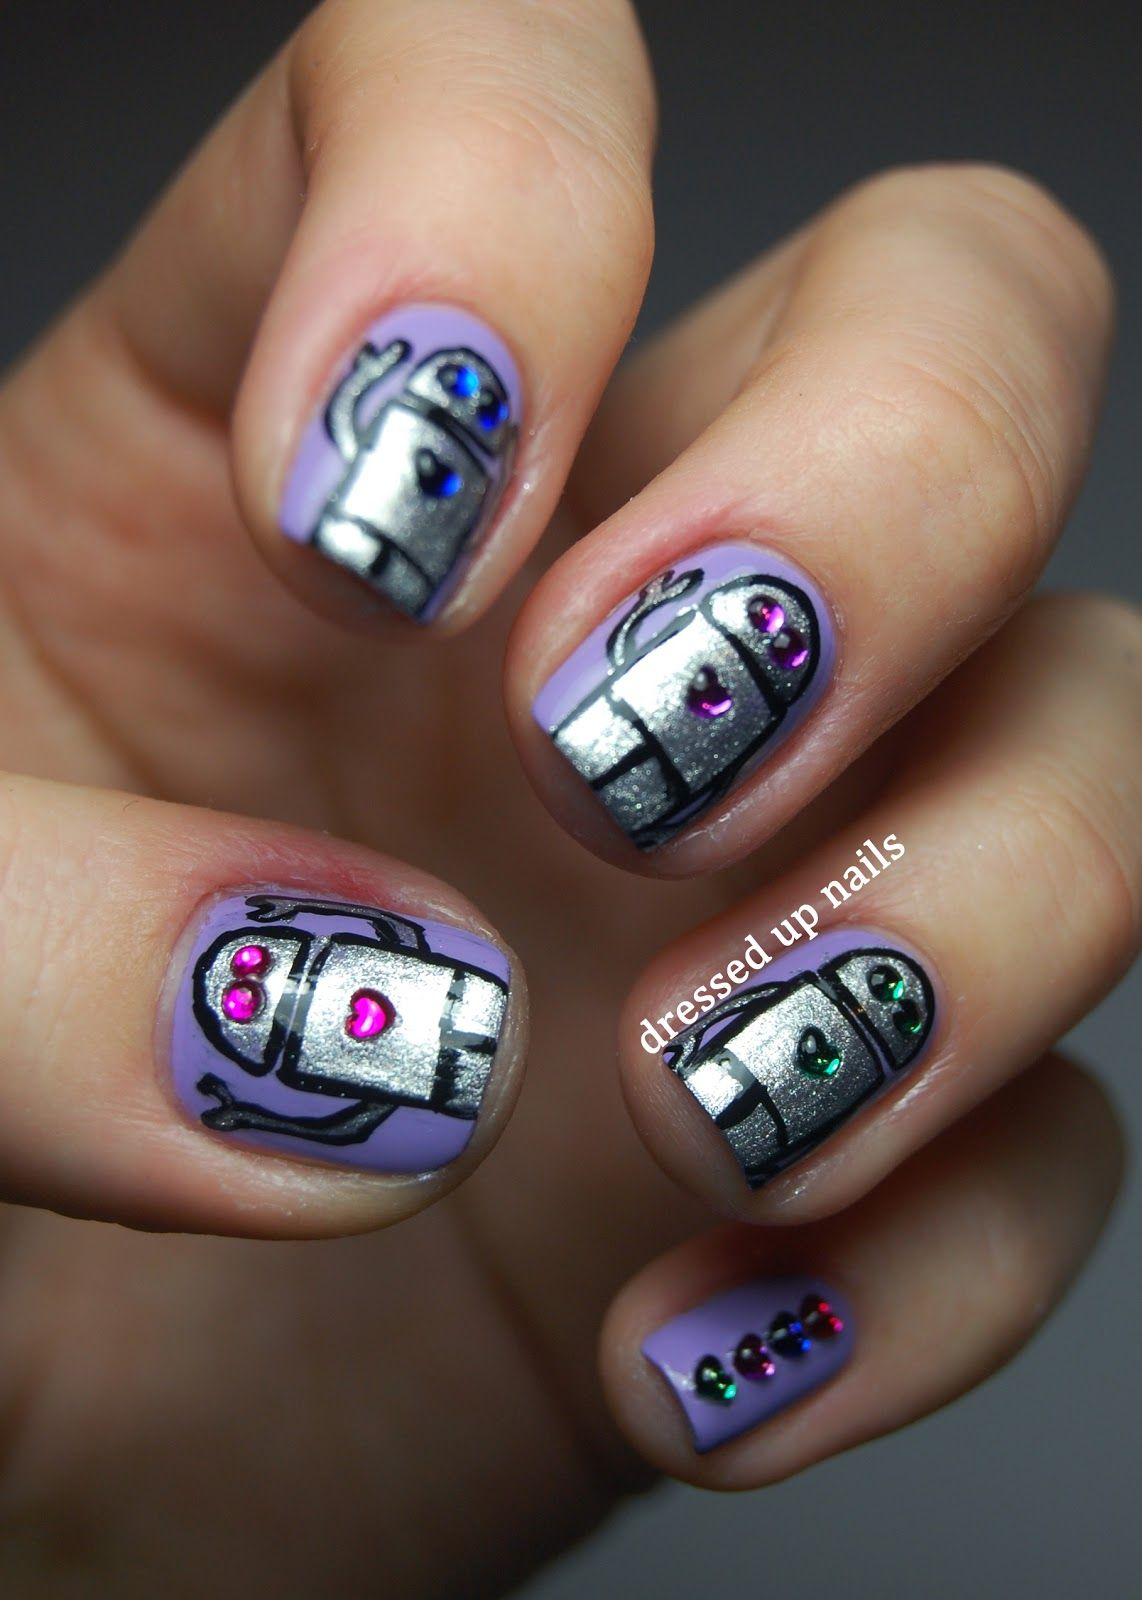 Dressed Up Nails - robot and rhinestone nail art | People who are ...